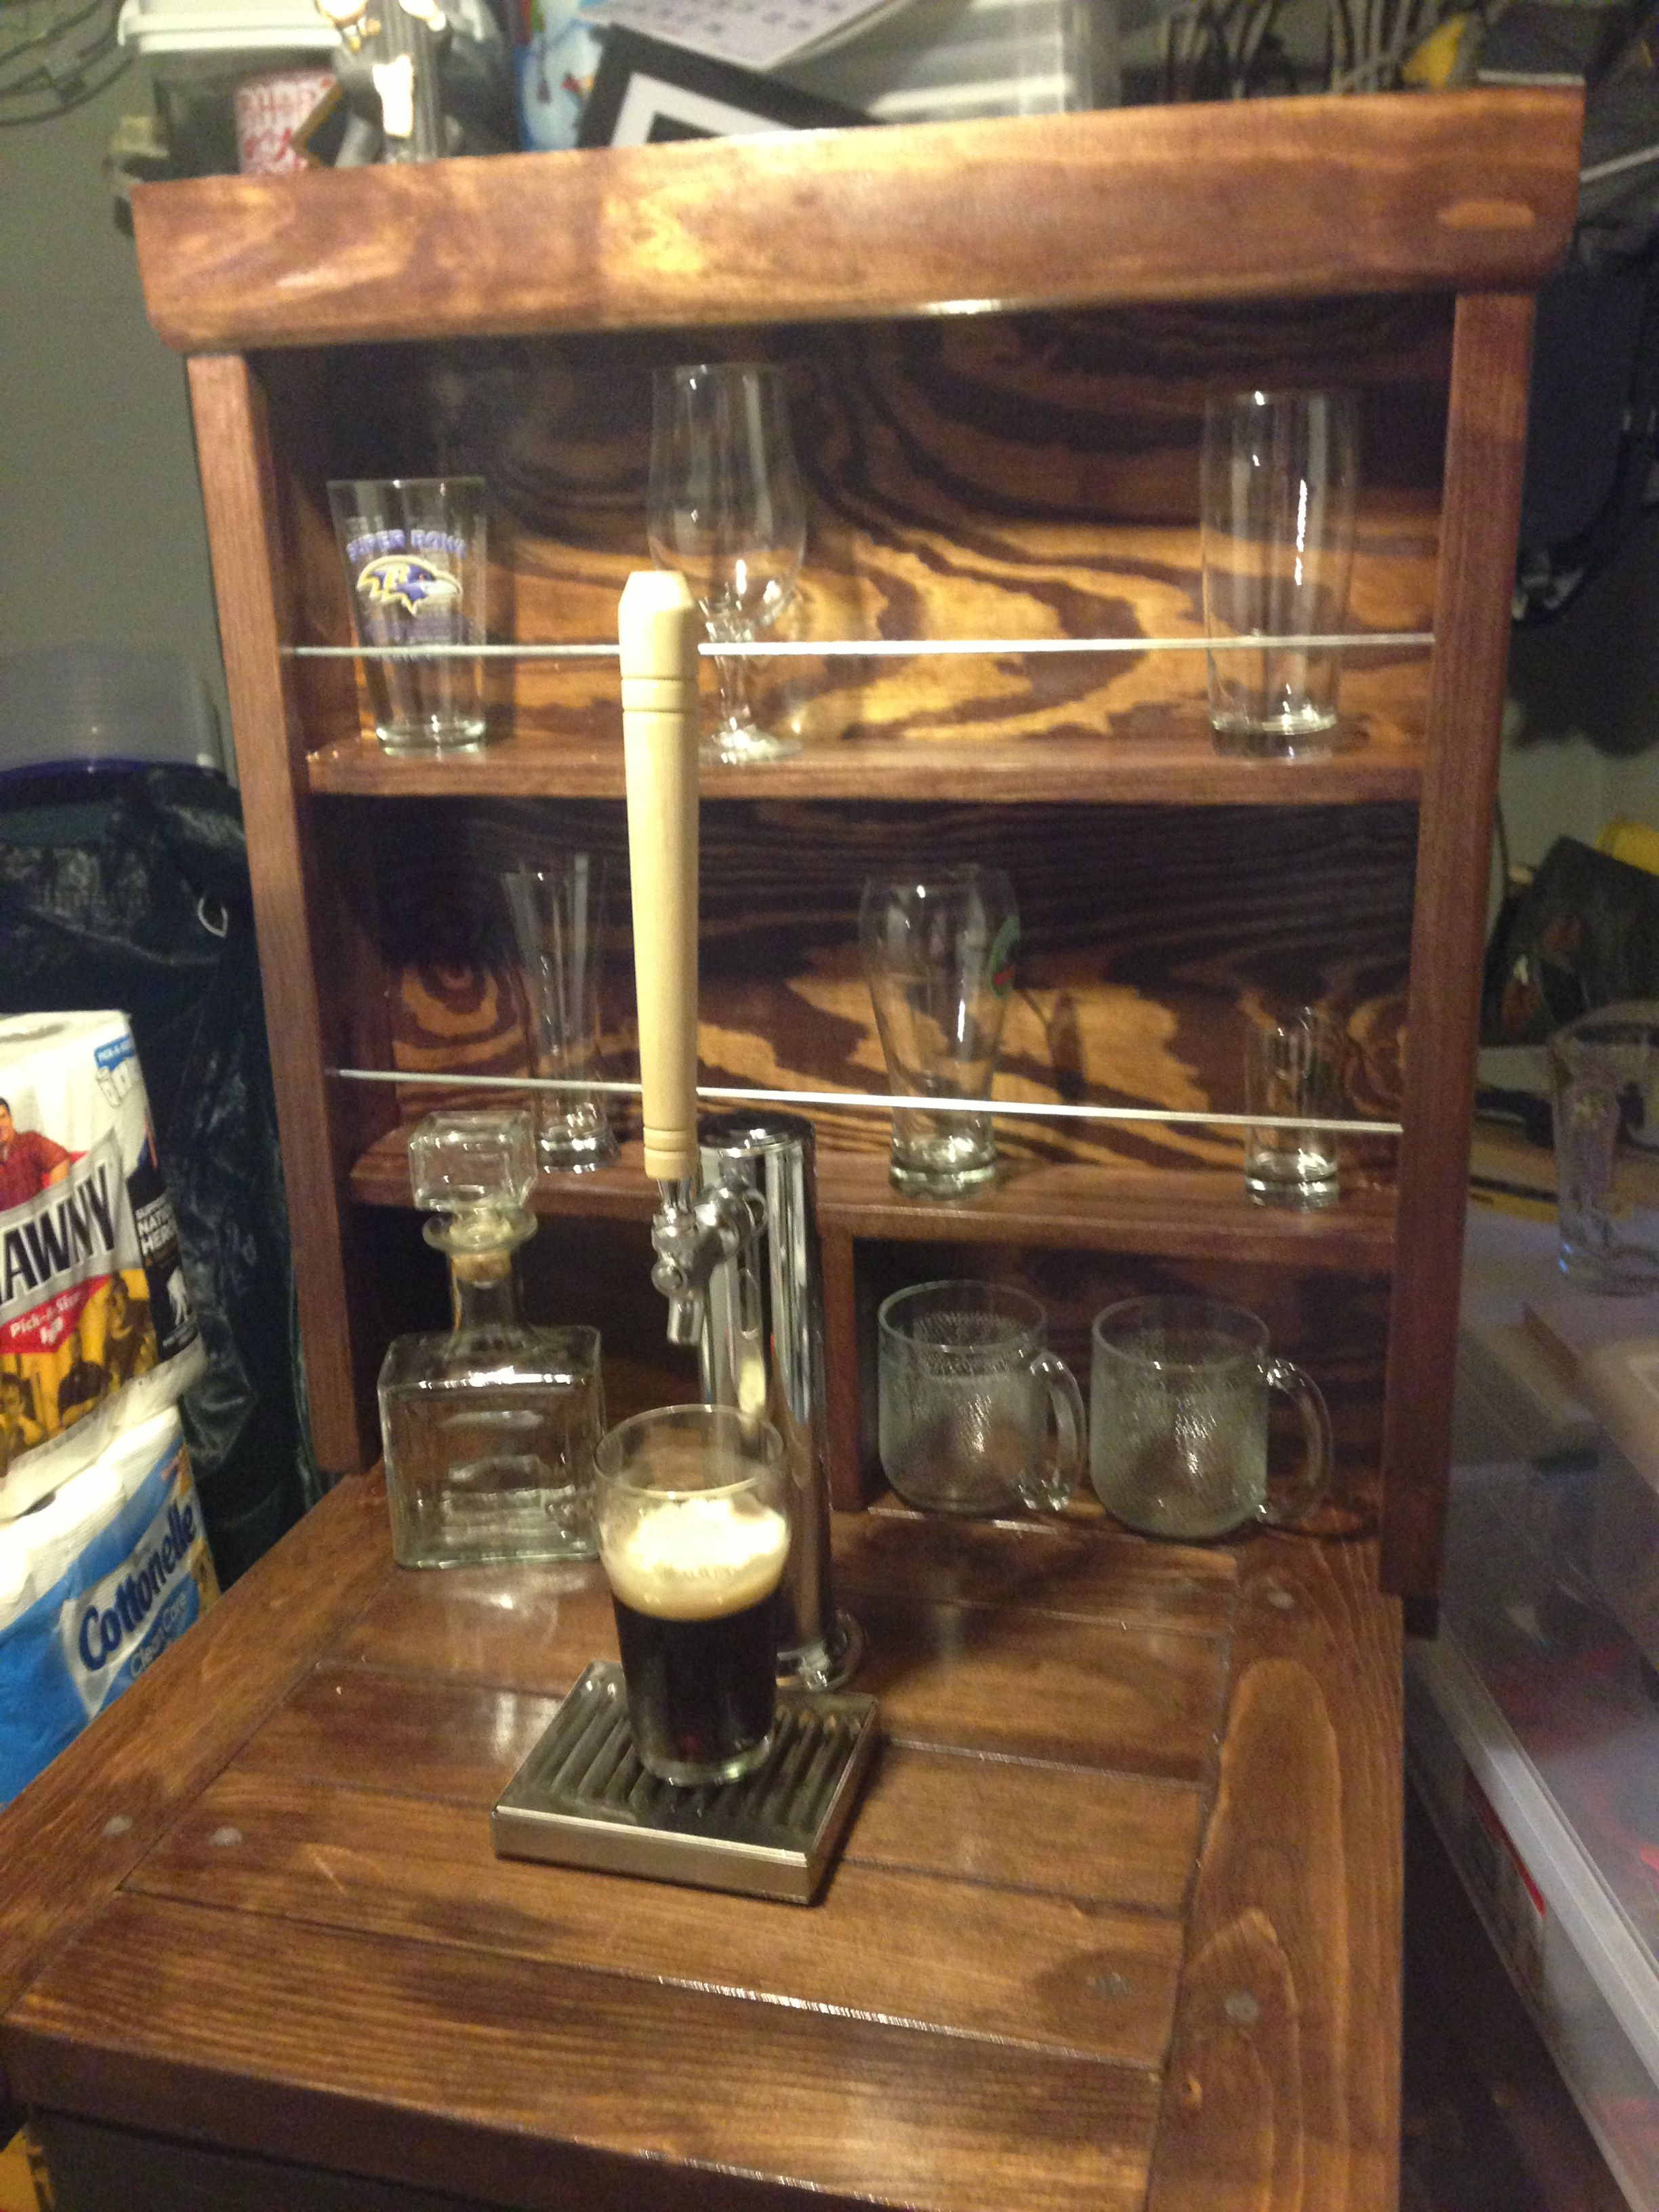 Homemade kegerator I like the shelving behind it for displaying glassware